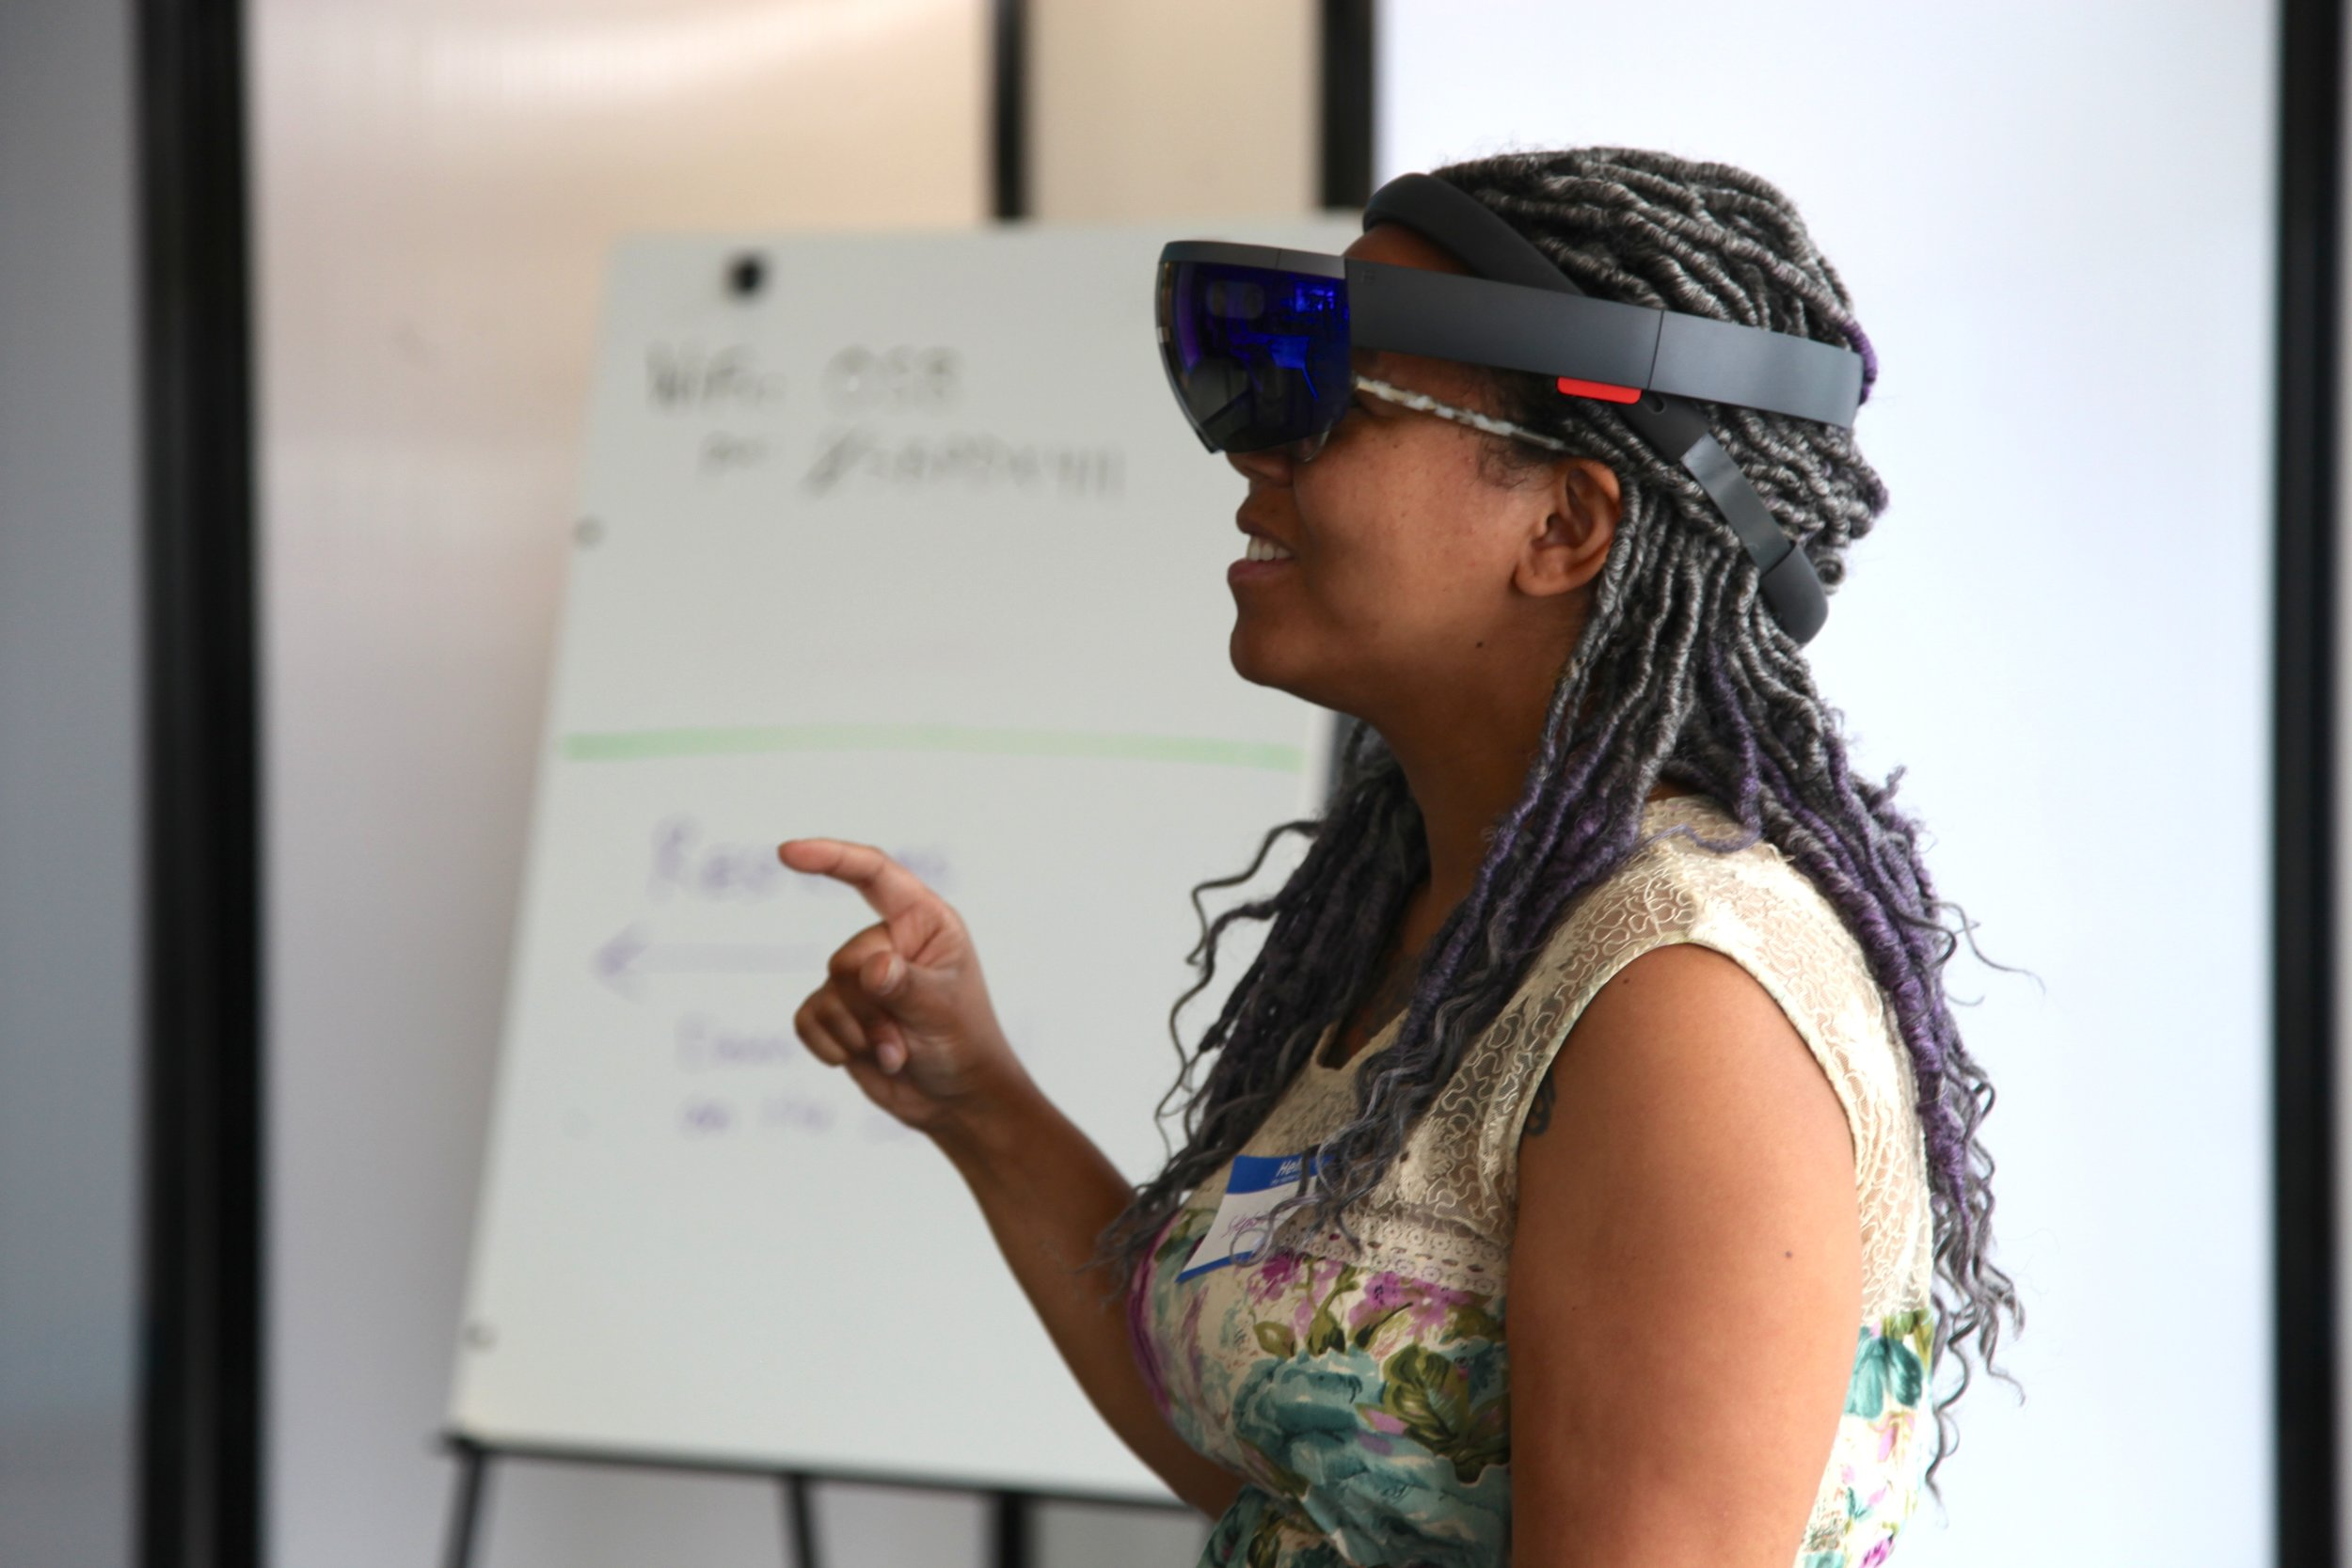 HoloLens - With a generous grant from Microsoft, Oregon Story Board and our partners at Clackamas Community College created a first of its kind training program to expand access to the latest technology, and invite new creators to design the future.